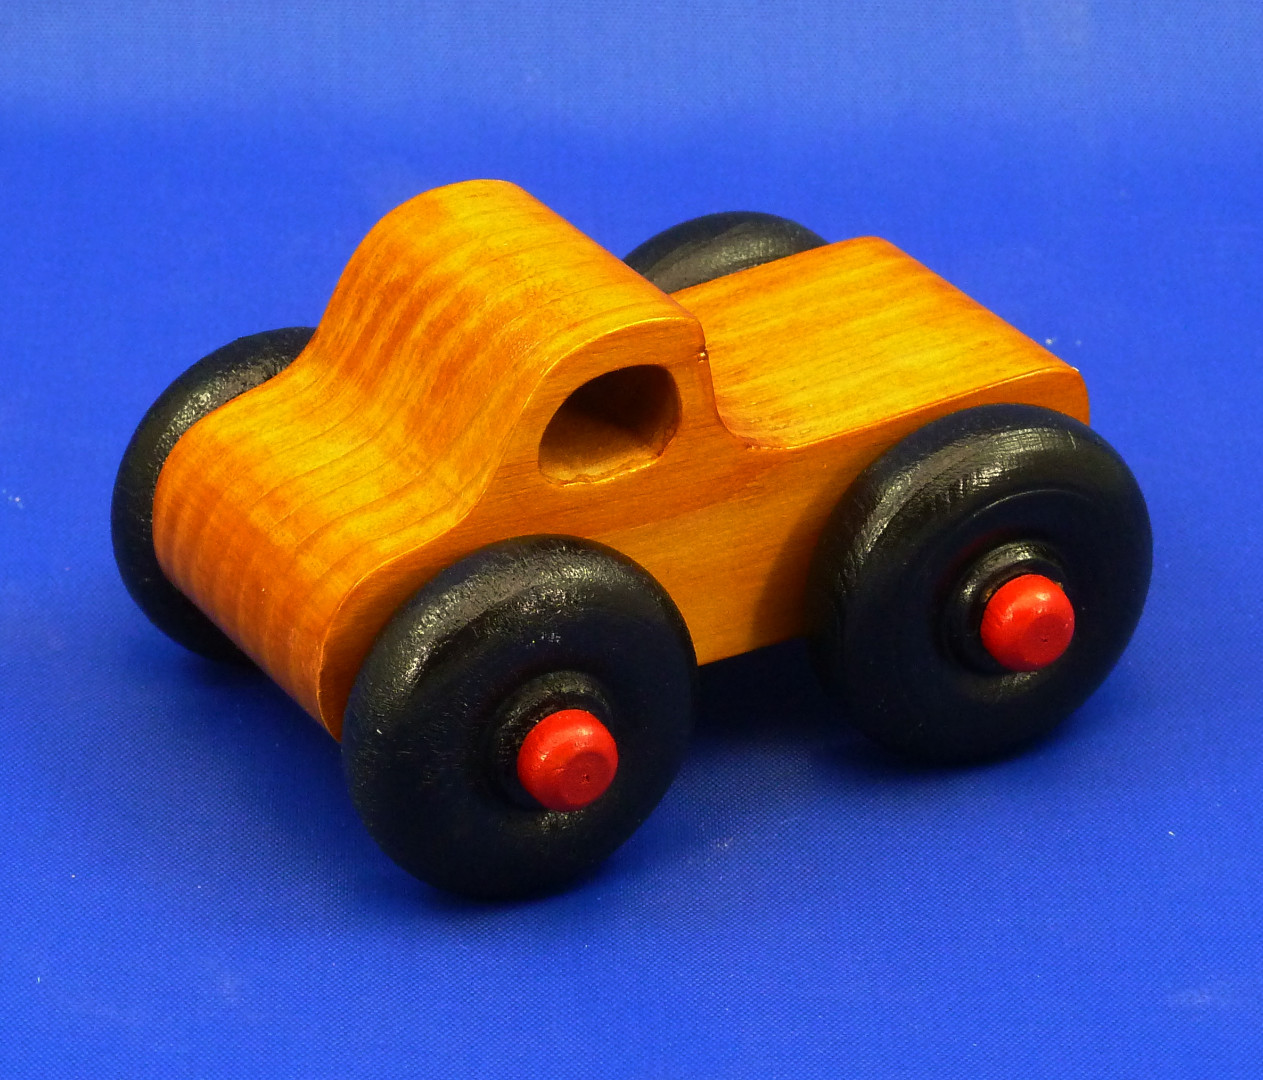 20170104-180546 Monster Truck - Wooden Toy Truck - Toy Truck - Wooden Truck - Play Pal - Pickup - Handmade - Handcrafted - Wood Truck - Wood Toy.jpg